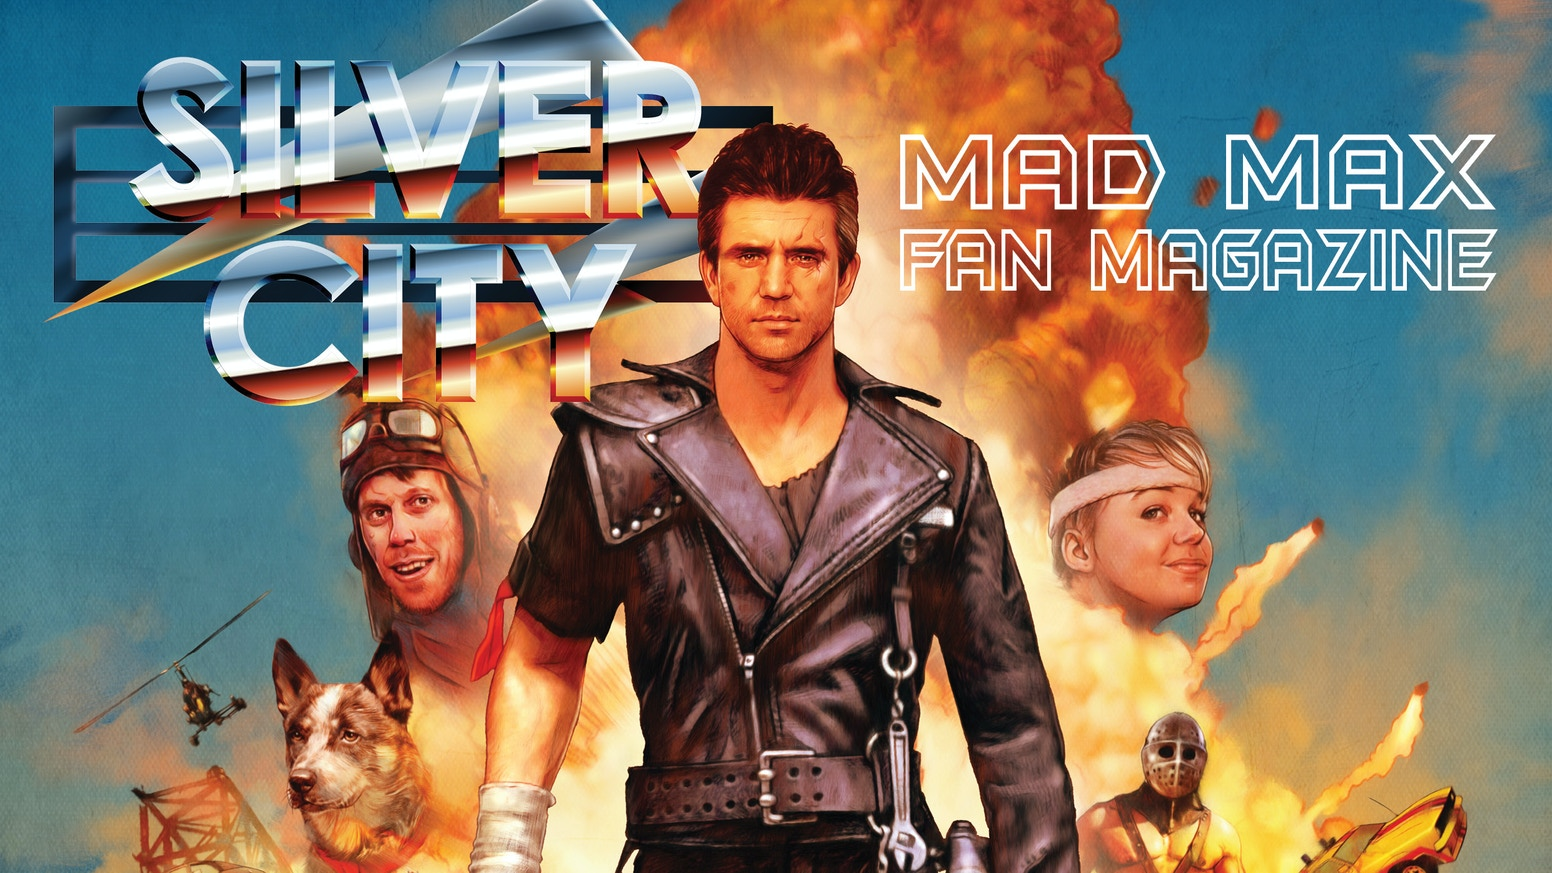 MAD MAX Fan Magazine - 'Silver City' - the first ever Mad Max fan magazine!